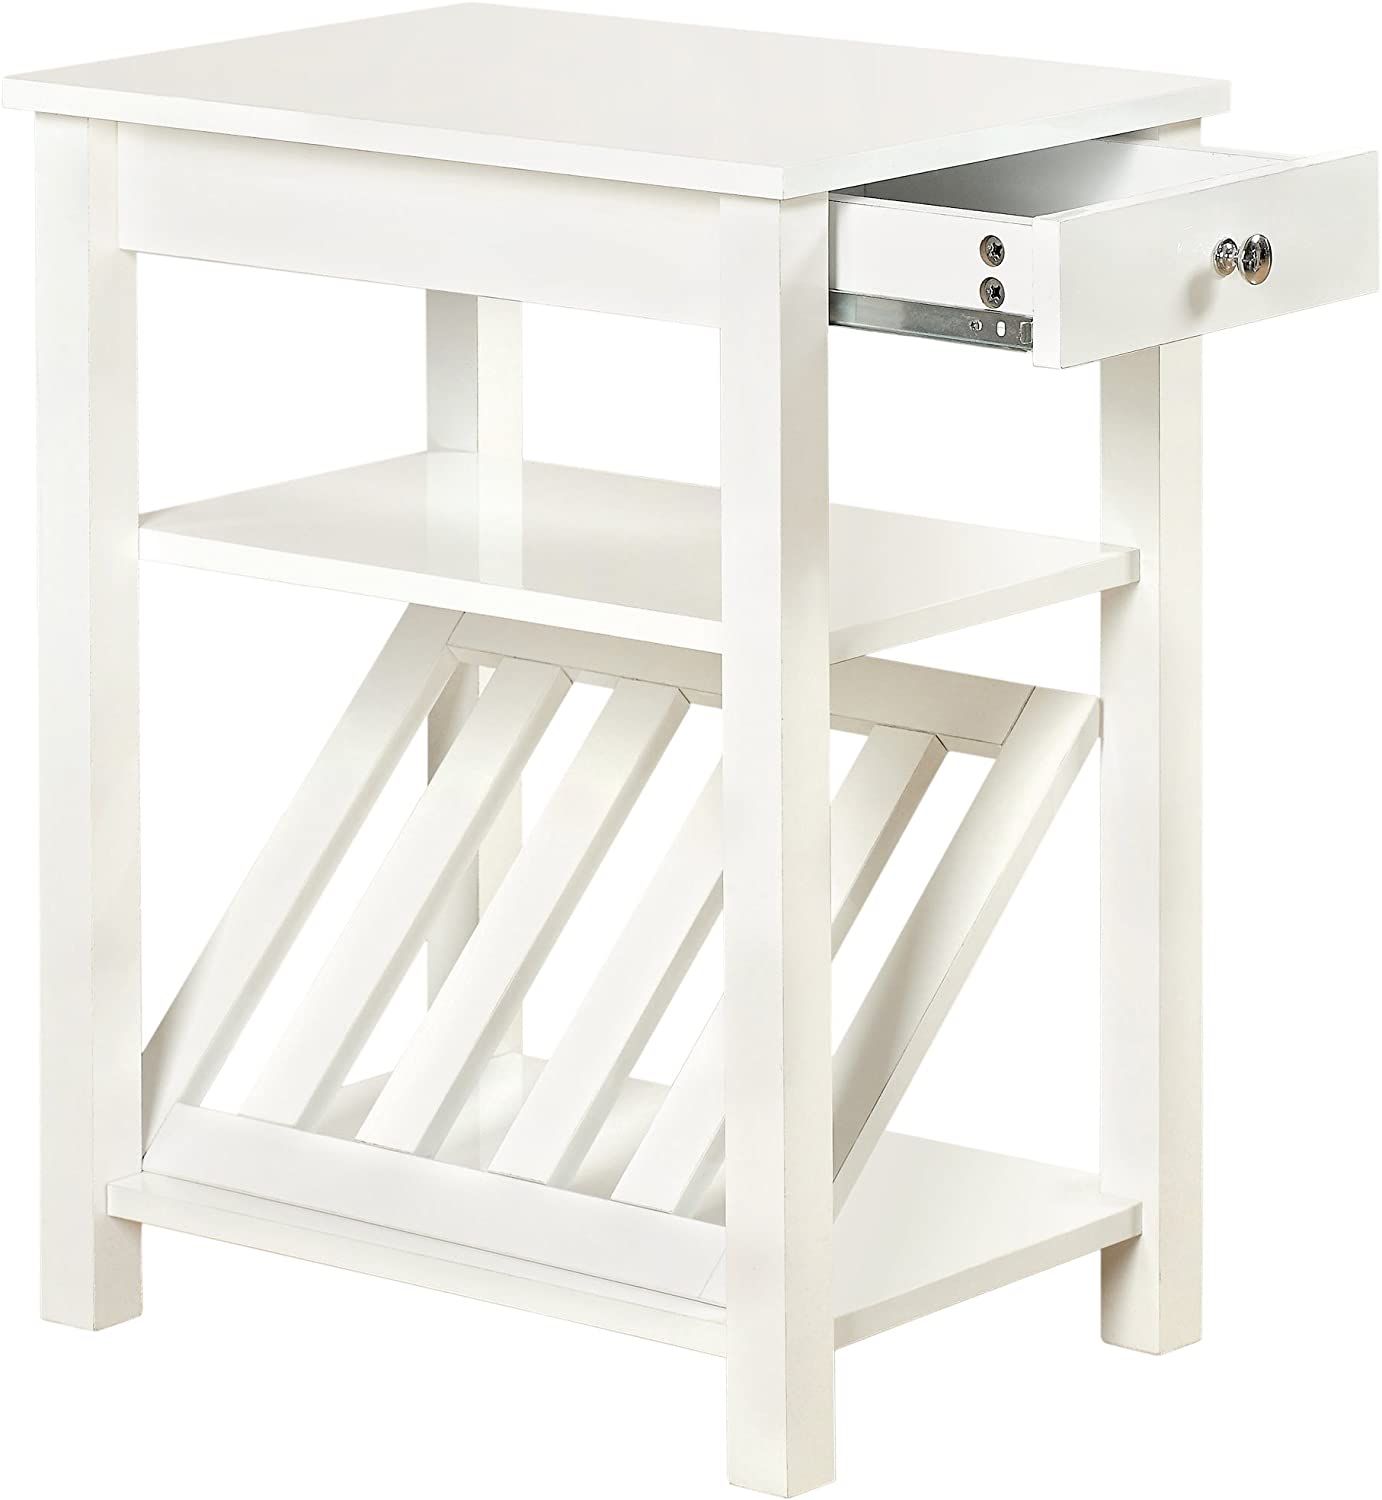 Furniture of America Erhart II 1-Drawer Side Table with Magazine Rack, White